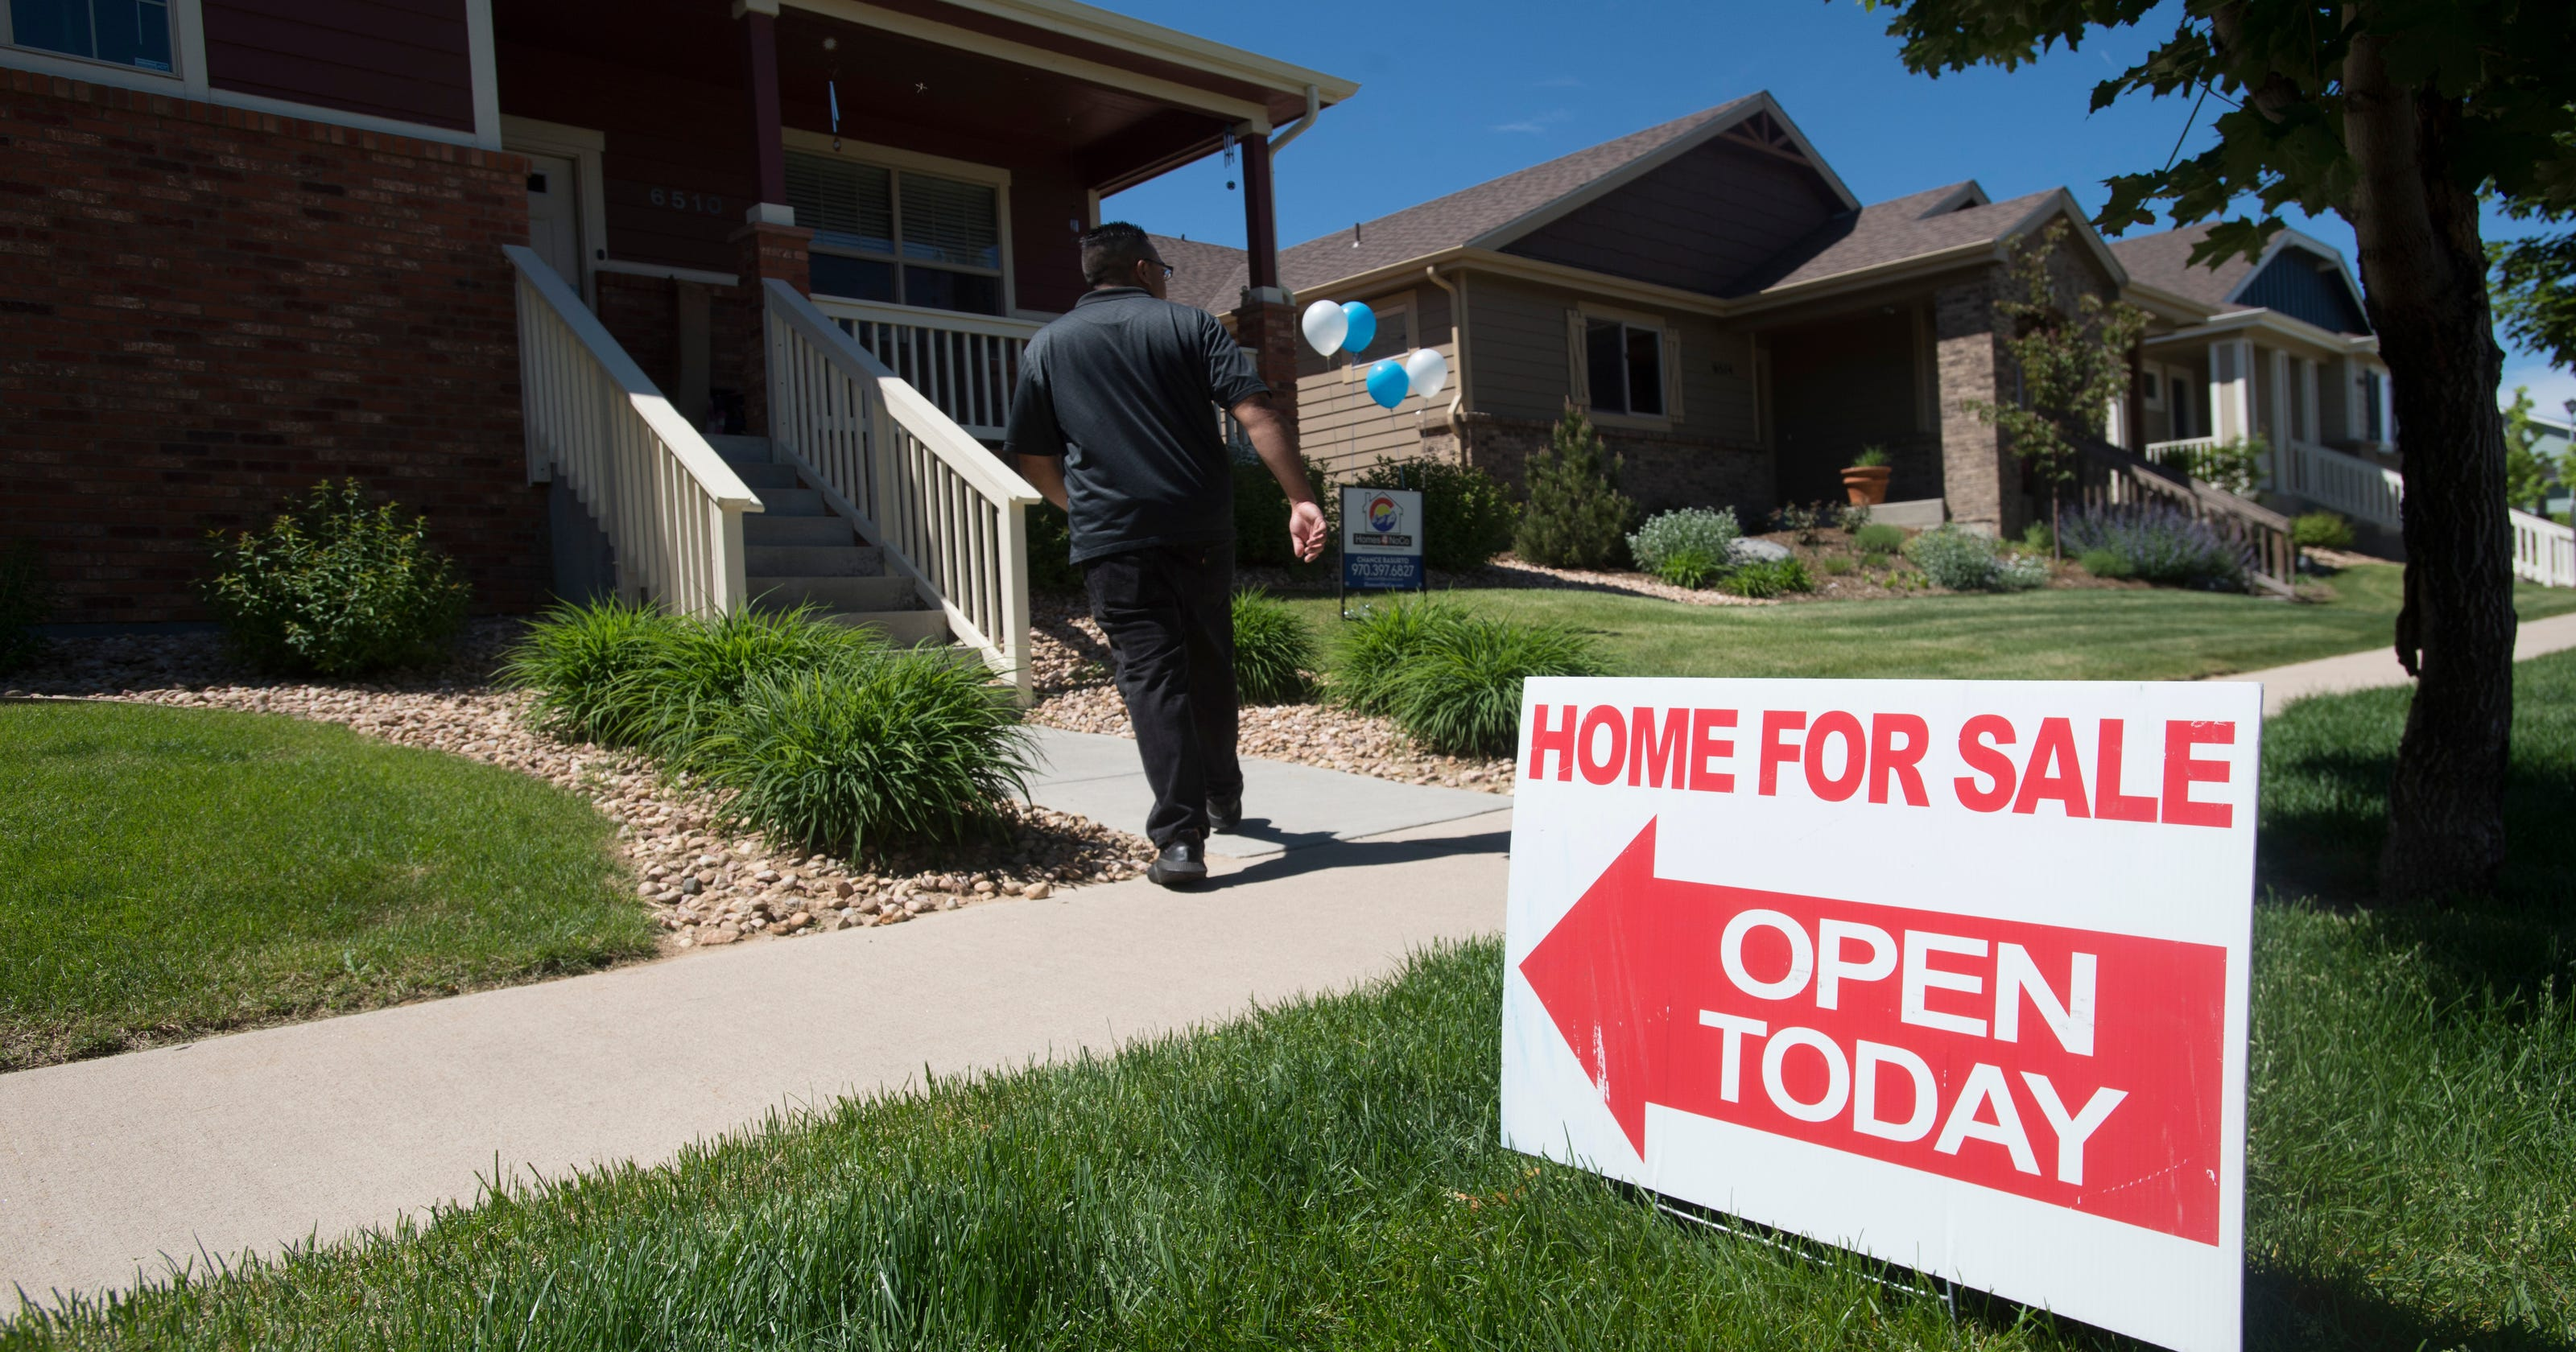 Cost of Fort Collins real estate may push buyers to Greeley